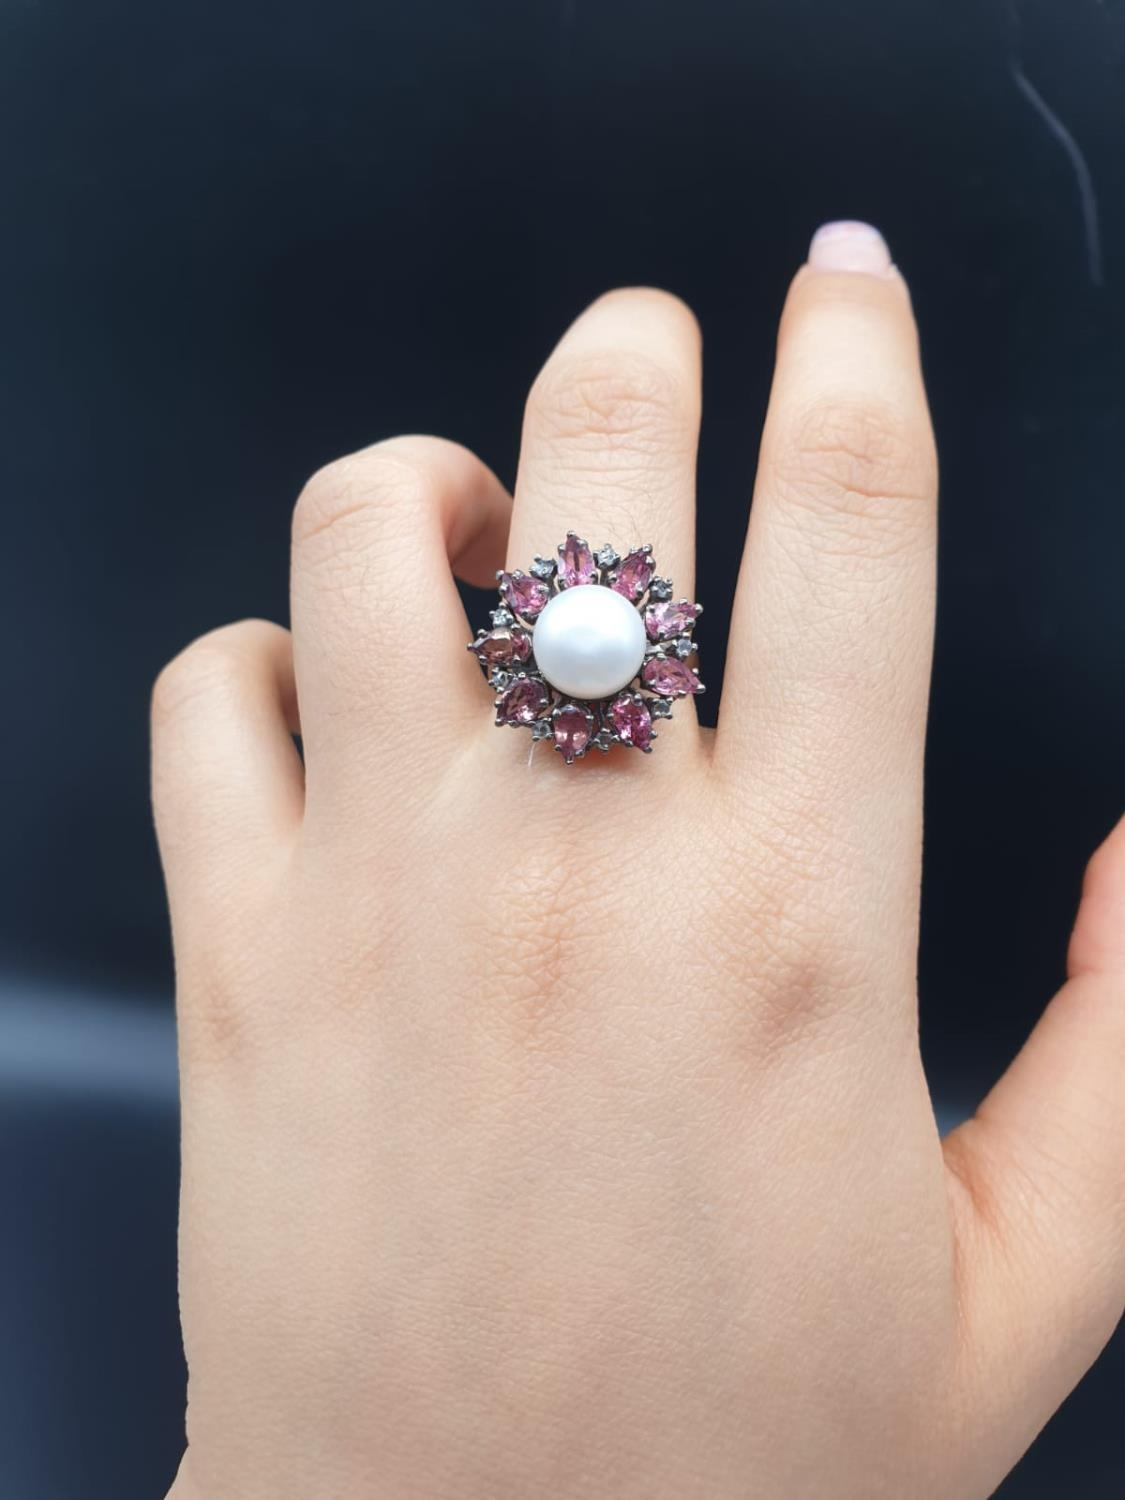 4.40 Cts Pearl & 2.35 Cts Pink Tourmalines set inside a 925 Blackened silver ring. With 0.20 Cts - Image 7 of 7